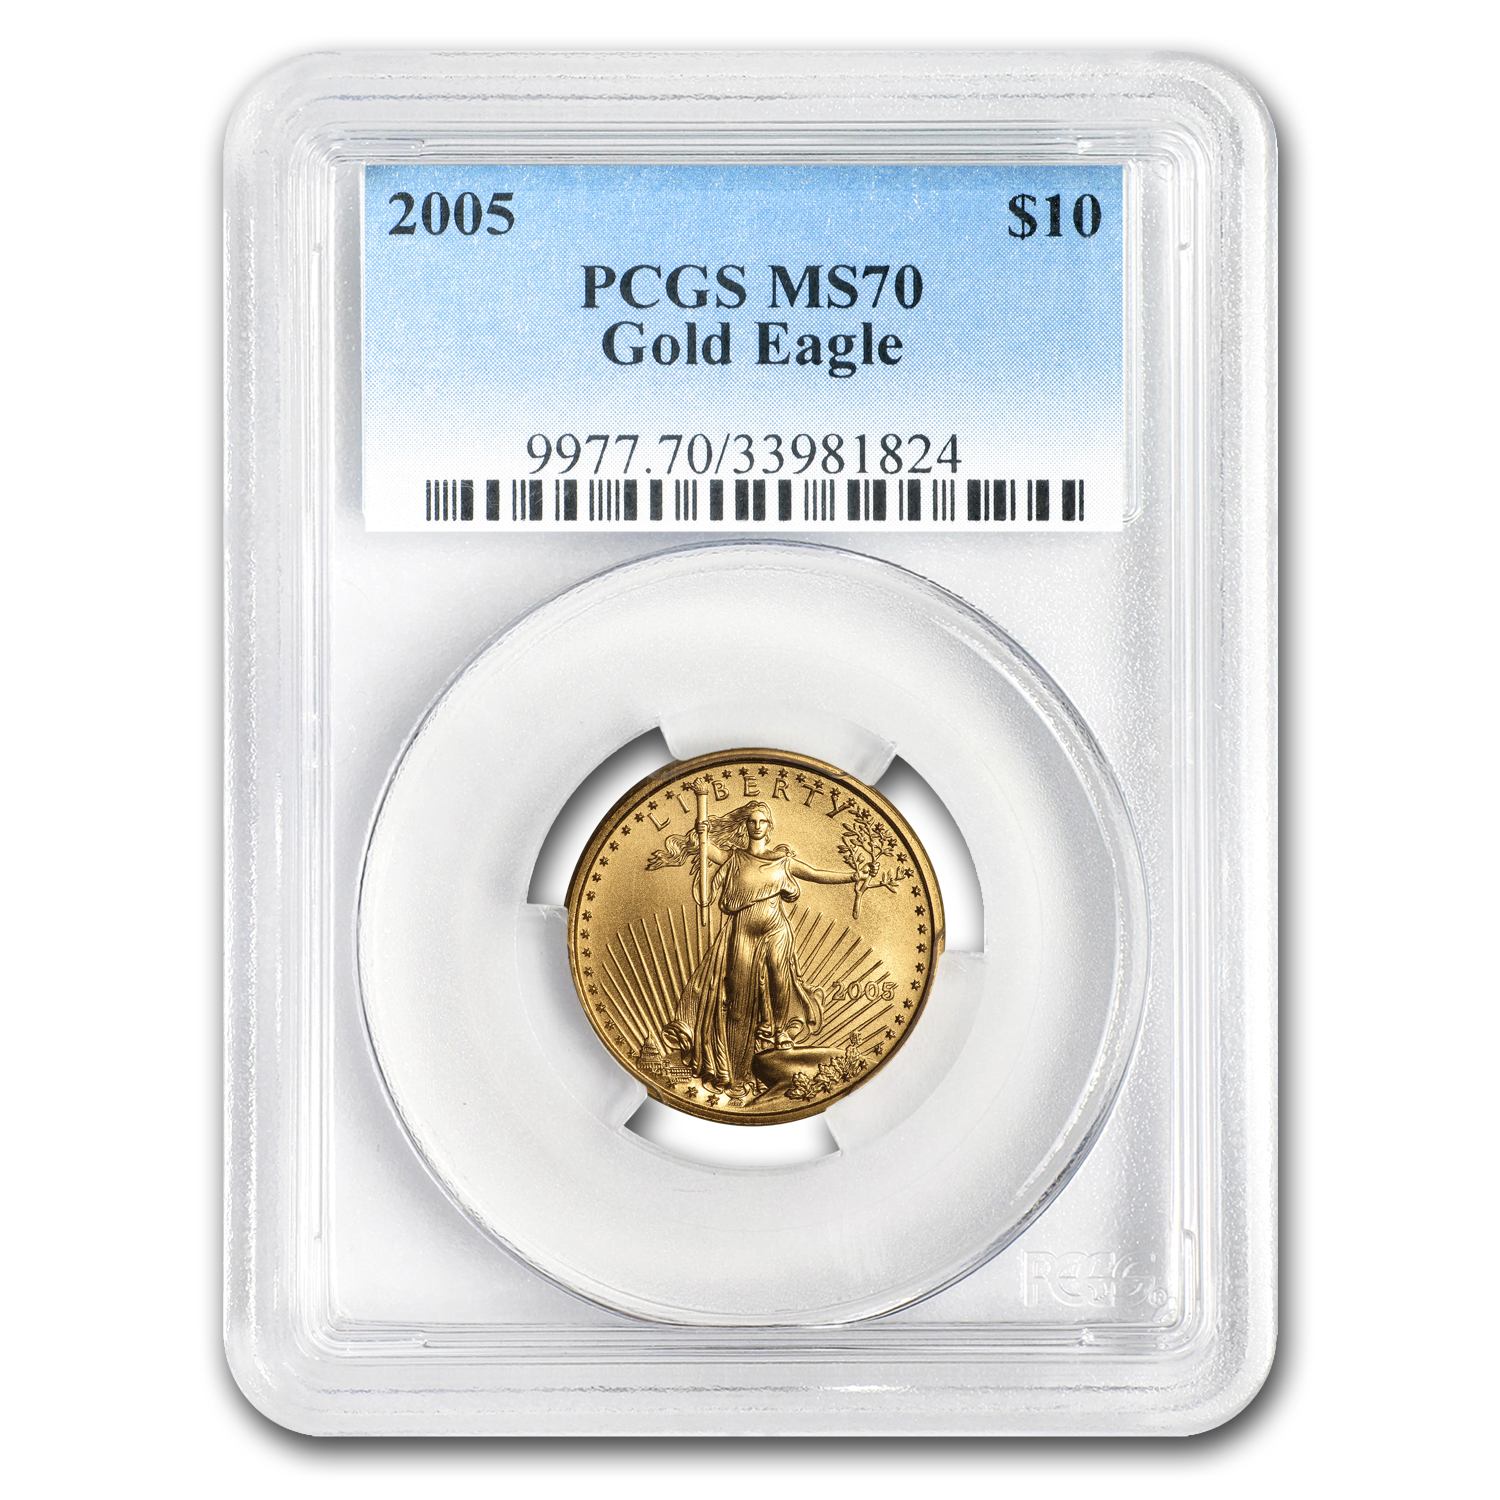 2005 1/4 oz Gold American Eagle MS-70 PCGS (20th Anniv)